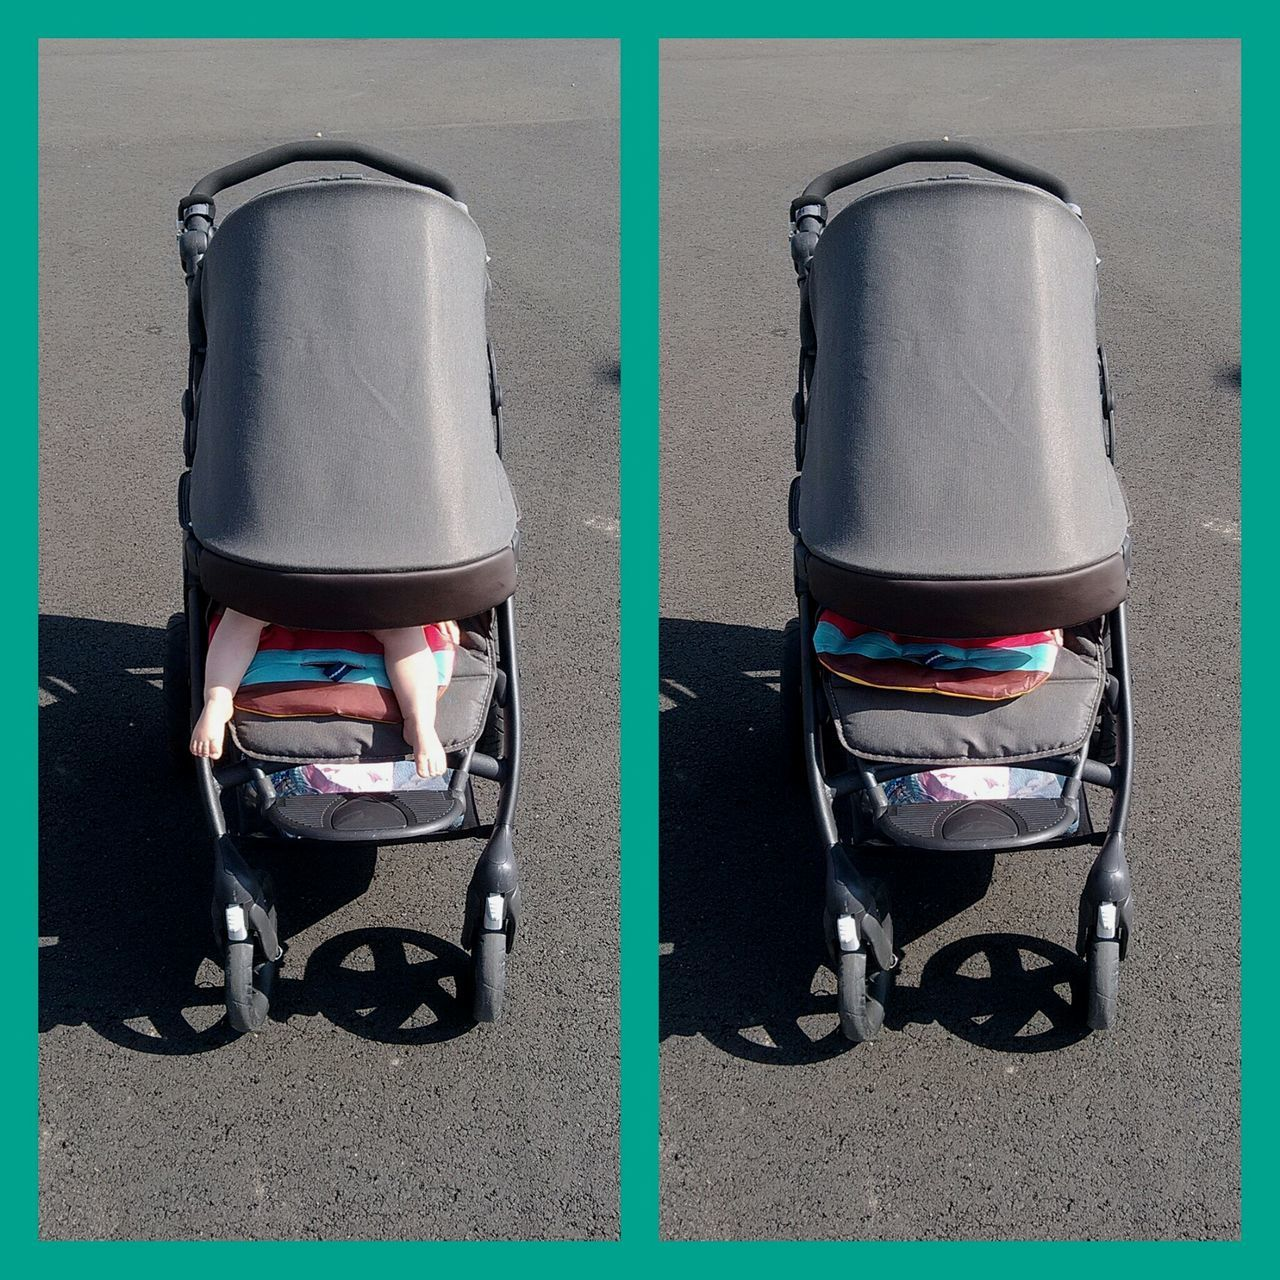 Strolling Stroller Pram Find The Difference Strolling On A Hot Day Summer Baby Feet Baby Find Me  Find The Baby